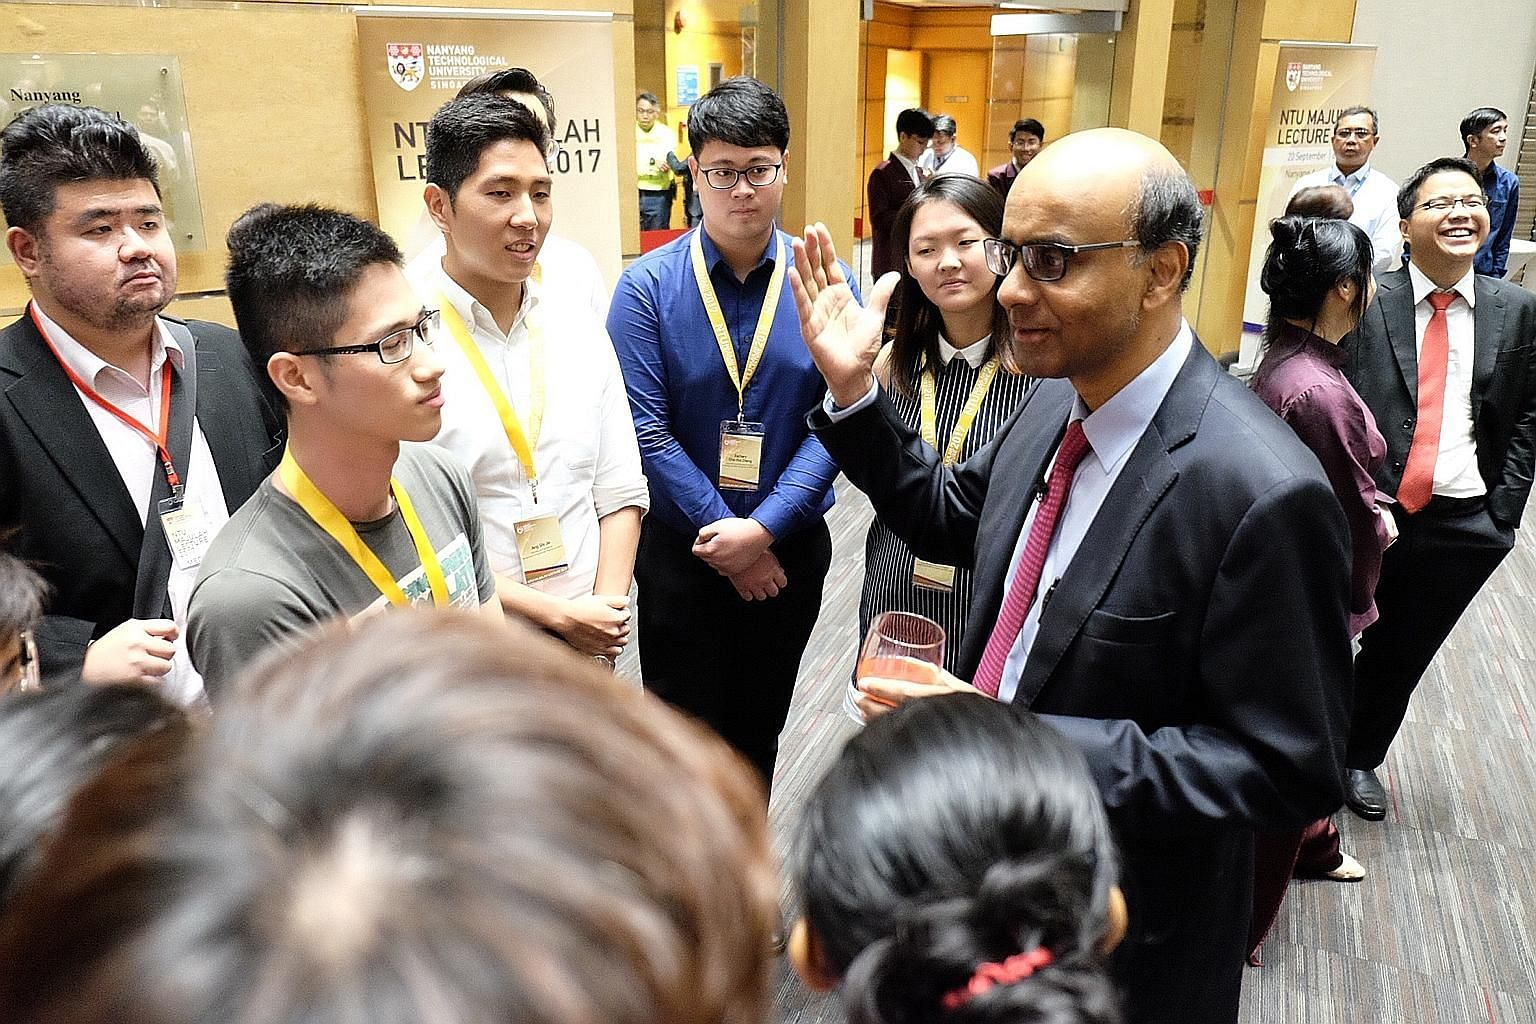 Deputy Prime Minister Tharman Shanmugaratnam having a chat with Nanyang Technological University students after the inaugural Majulah Lecture. In his nearly one-hour-long speech, he said the education system must keep changing and experimenting, or i